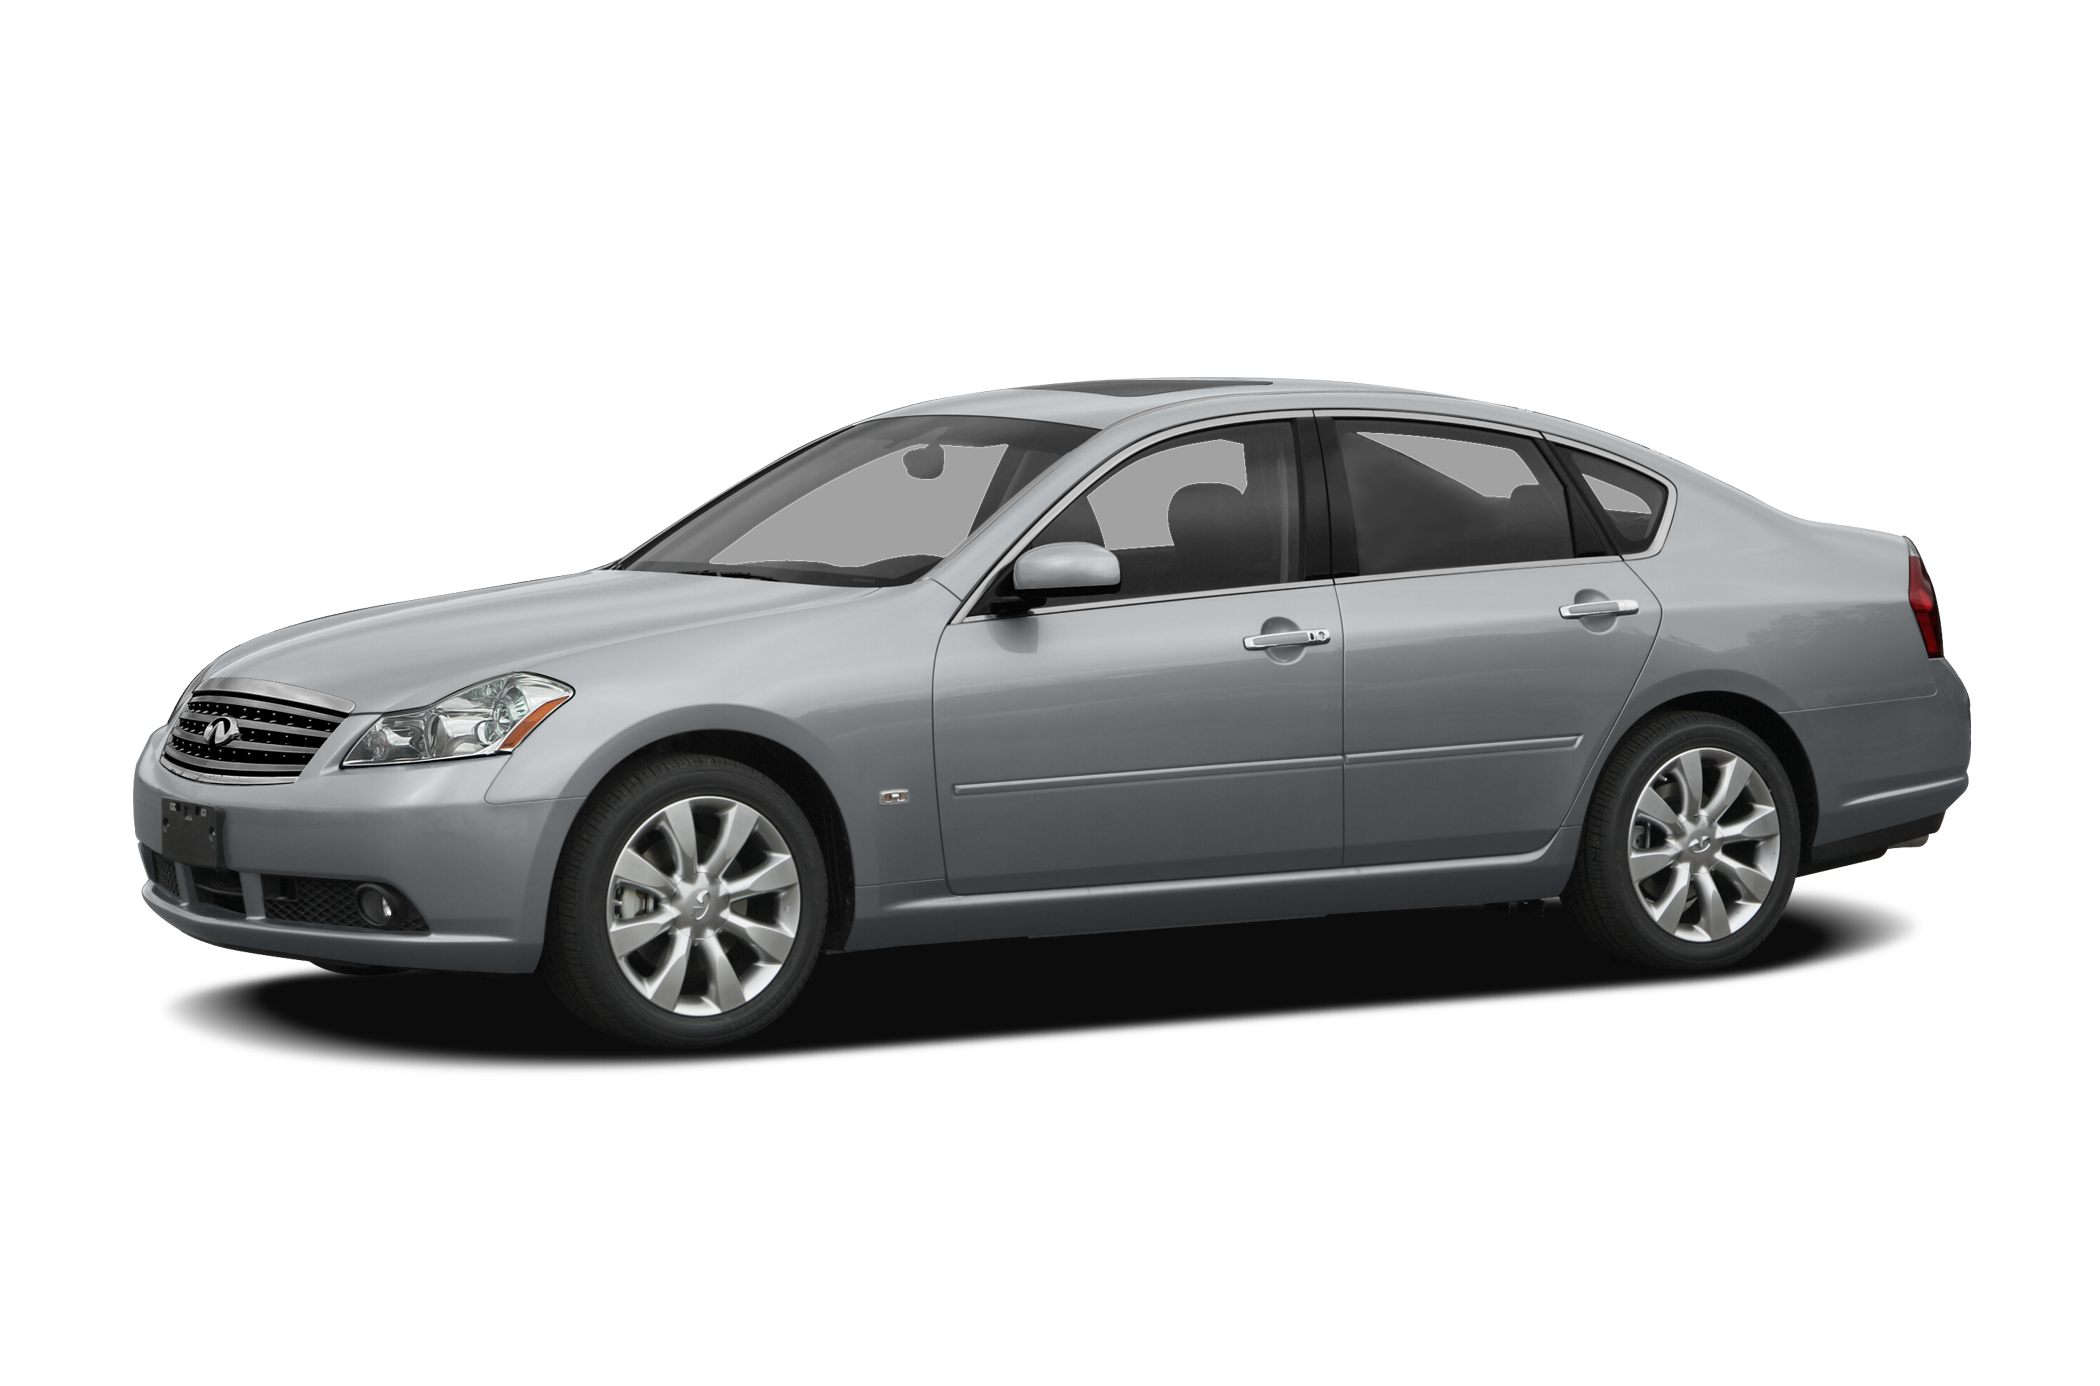 2007 INFINITI M35x for Sale